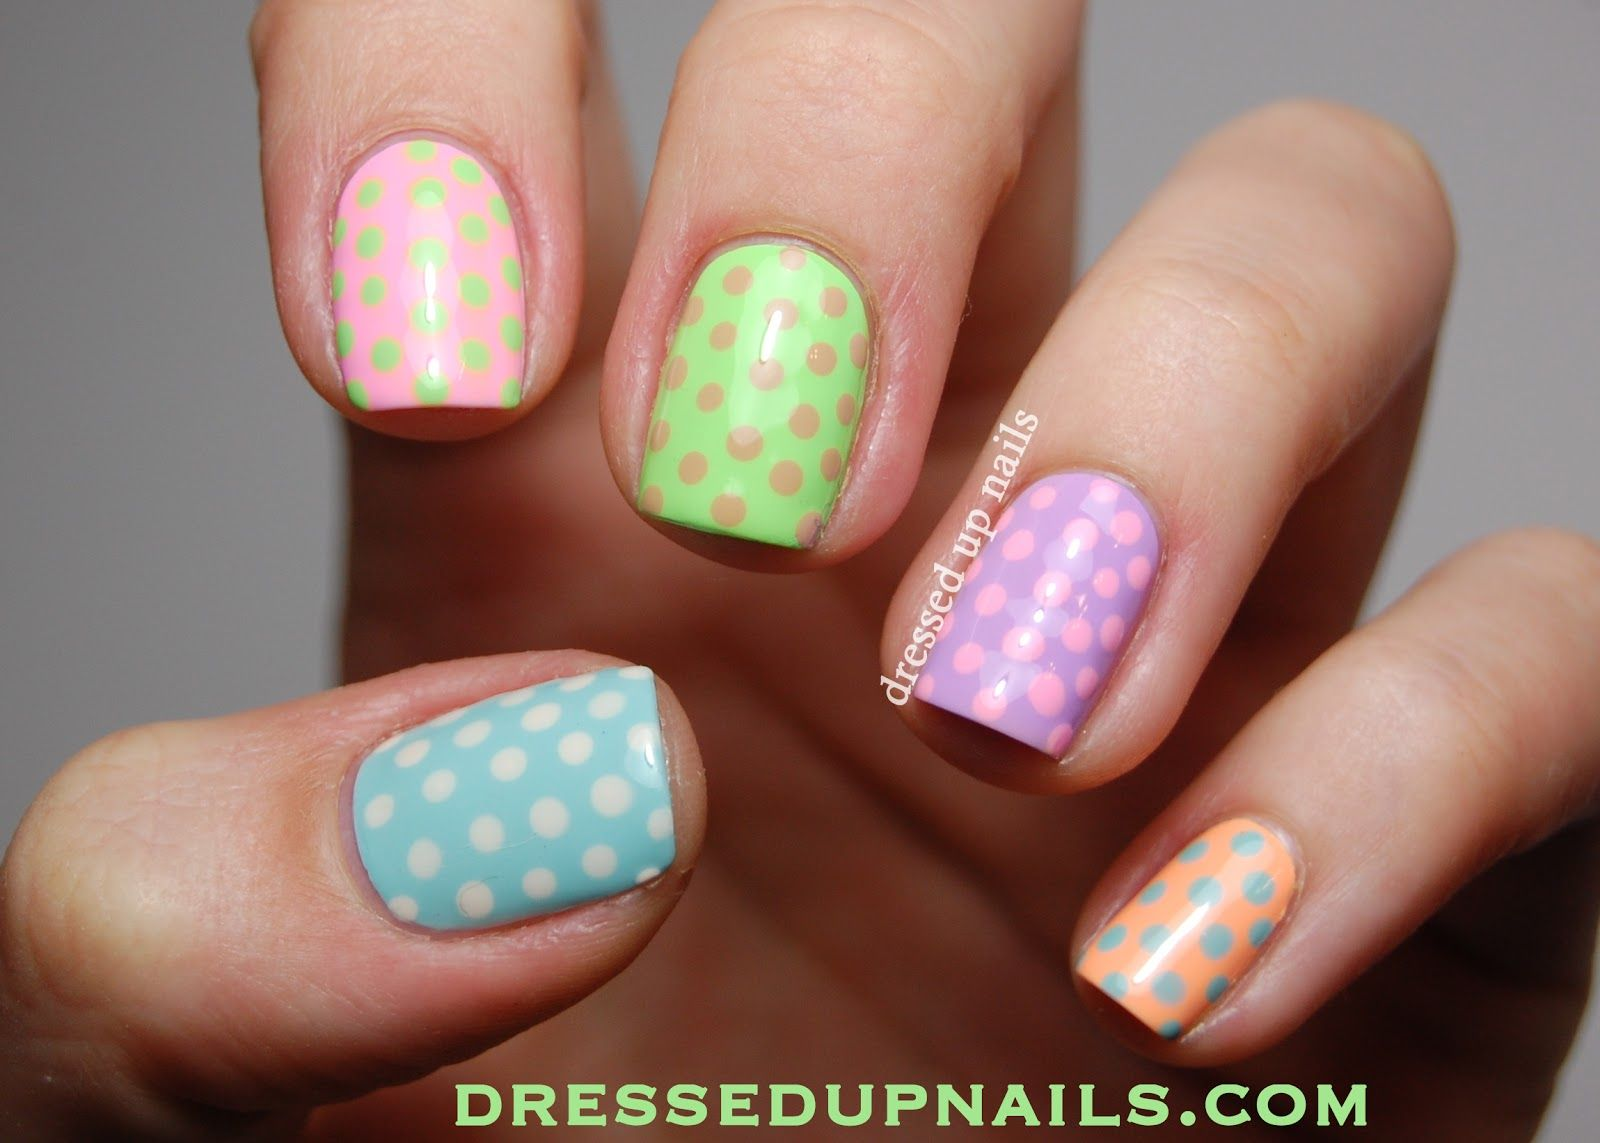 Dressed Up Nails Pastel Skittle Nail Art With Lime Crime Polishes